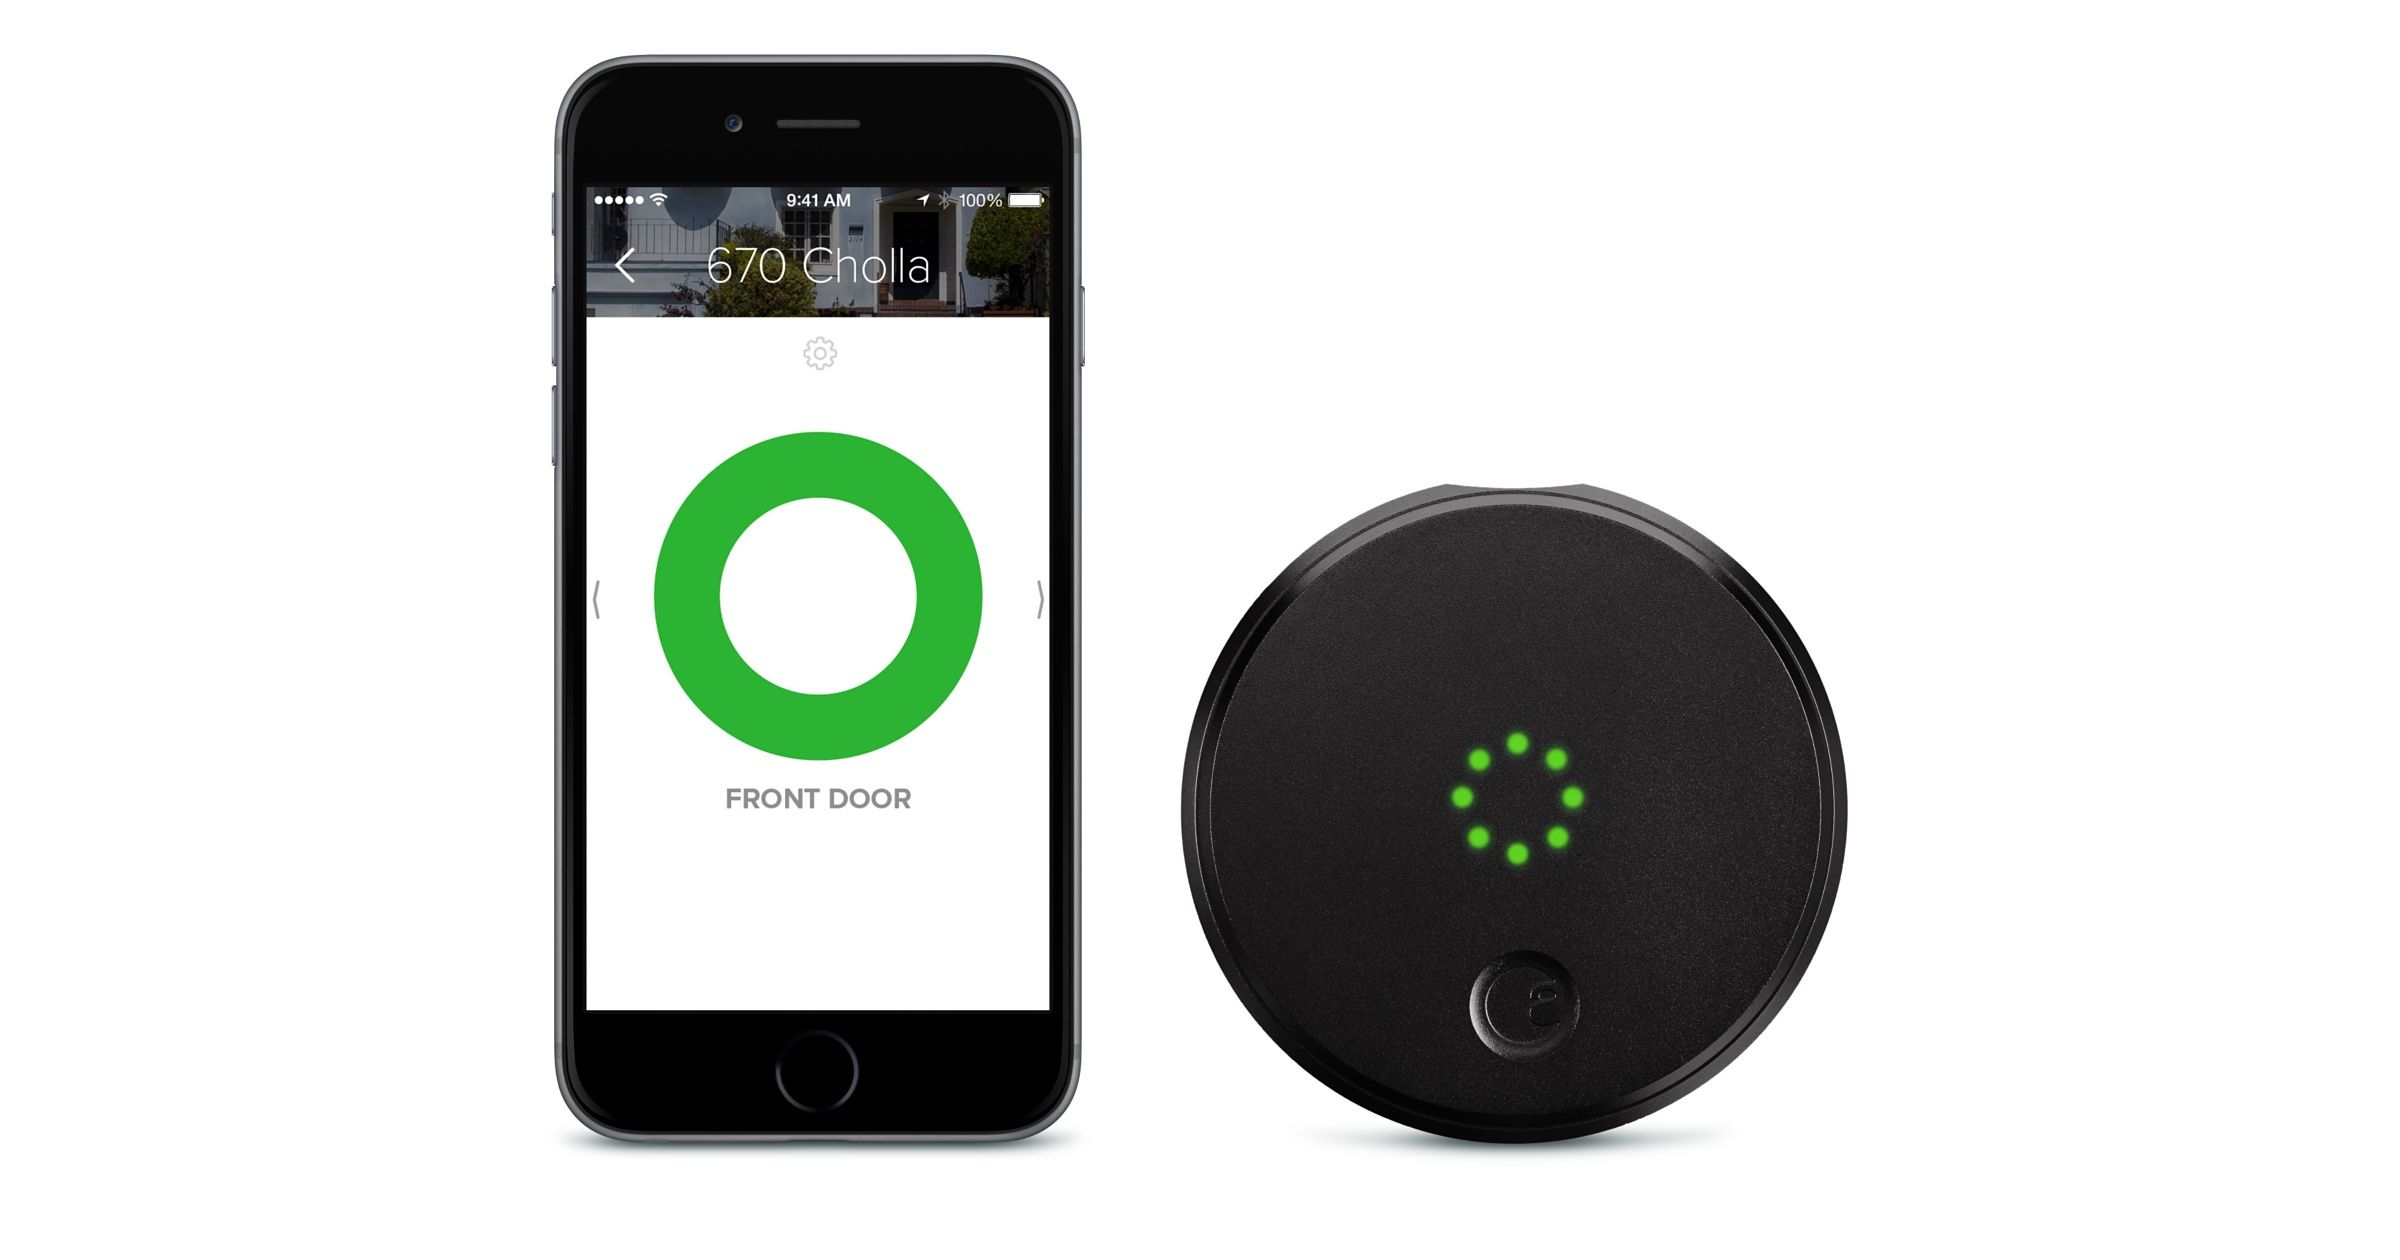 The August Smart Lock gives you an intelligent, secure way to ...